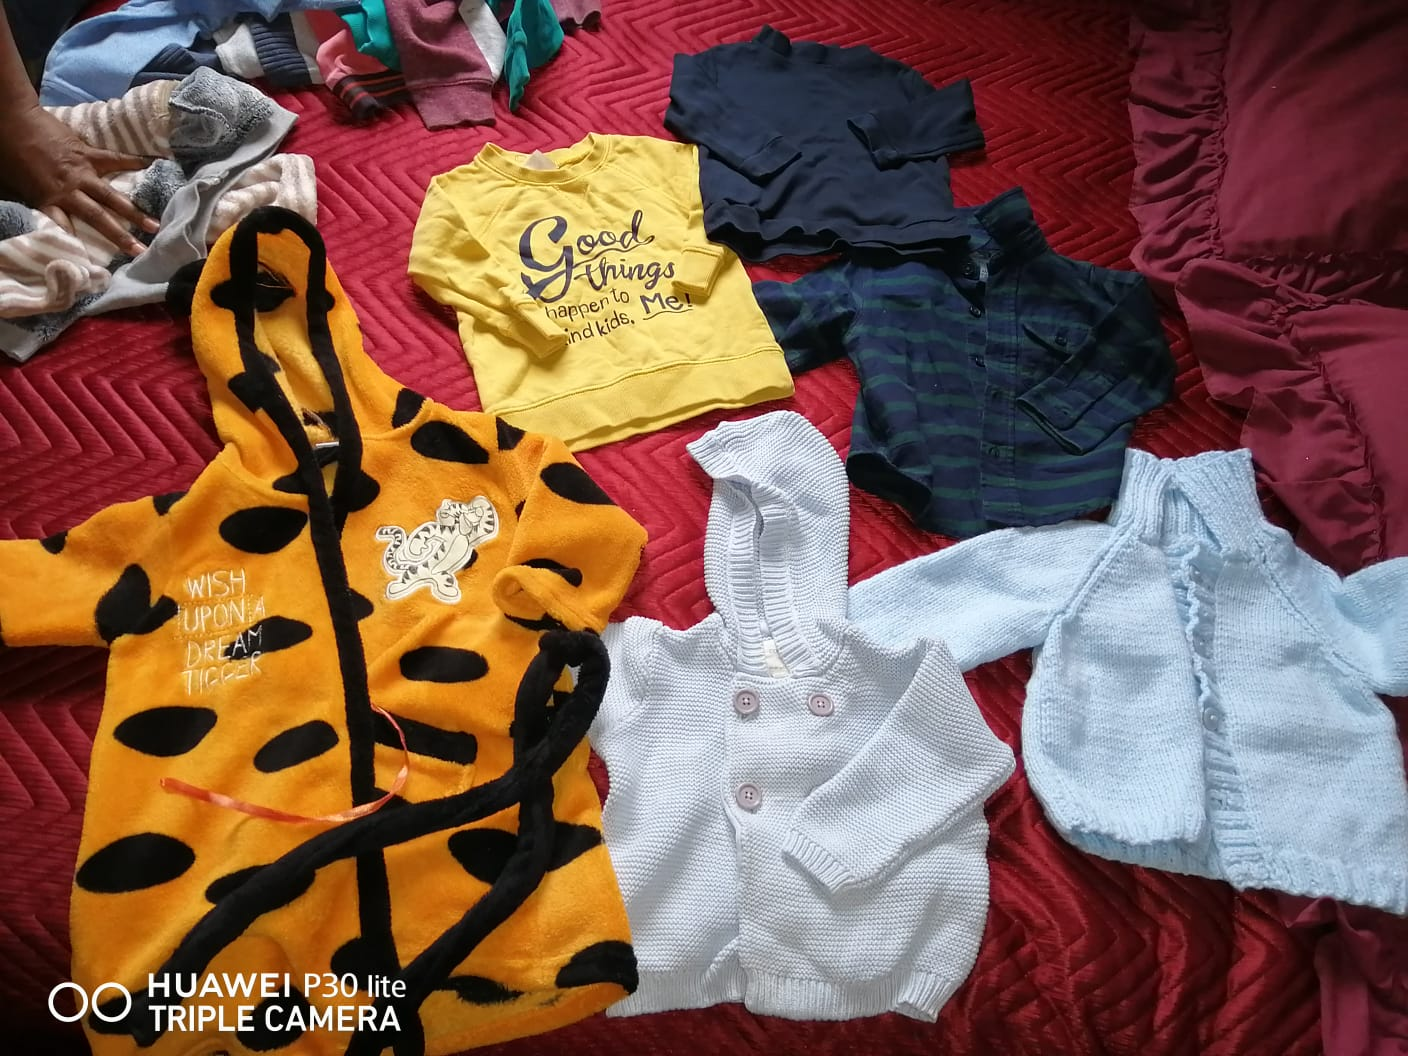 Loads and loads of baby clothing very cheap food for resale too